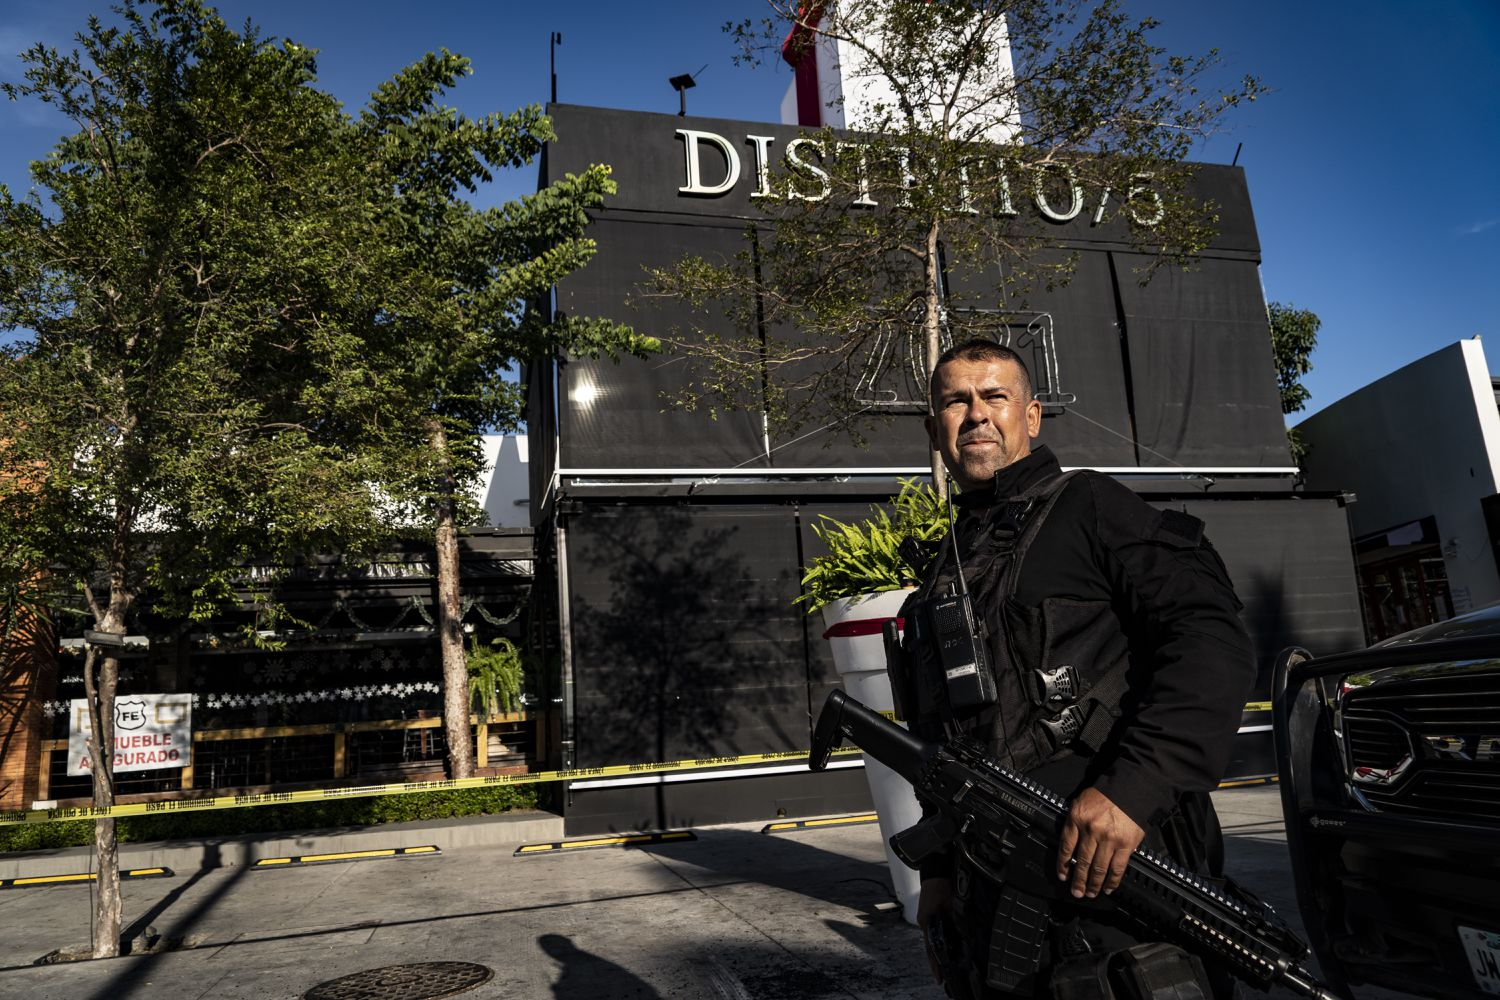 Elements of the Jalisco state police guard the District 5 Bar.